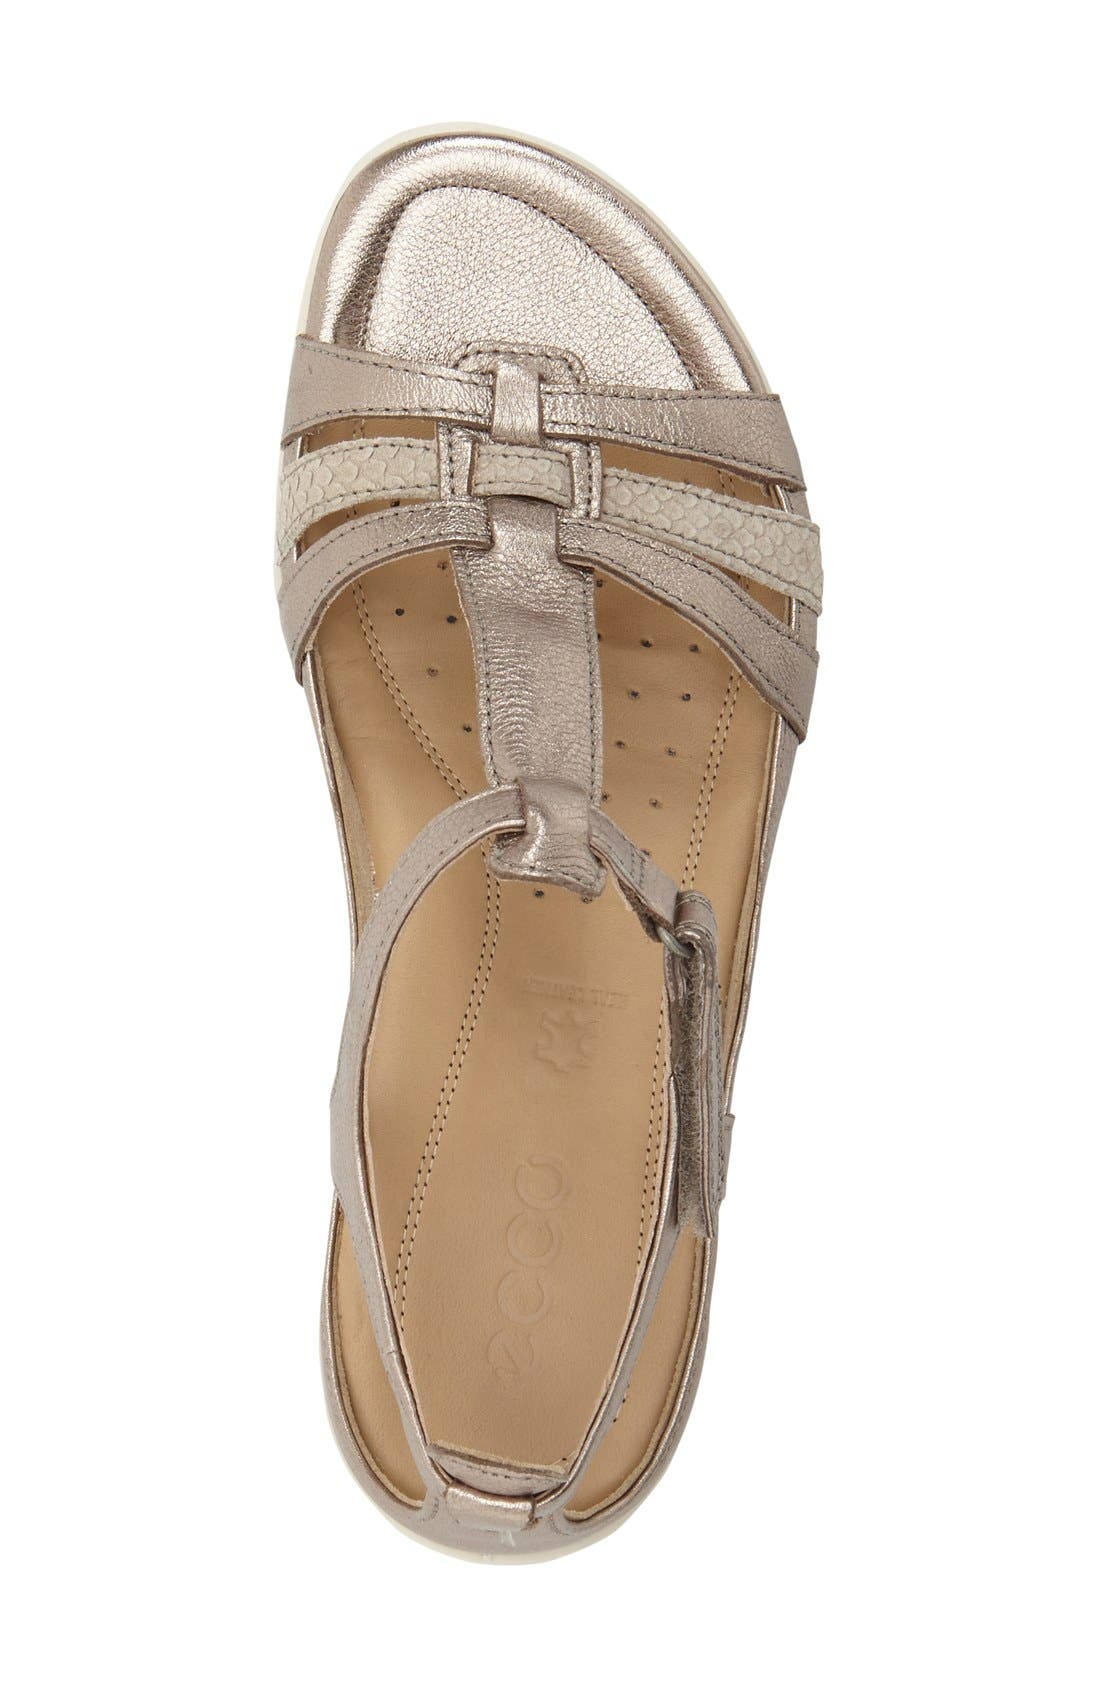 'Flash' Sandal,                             Alternate thumbnail 3, color,                             Warm Grey/ Metallic Leather